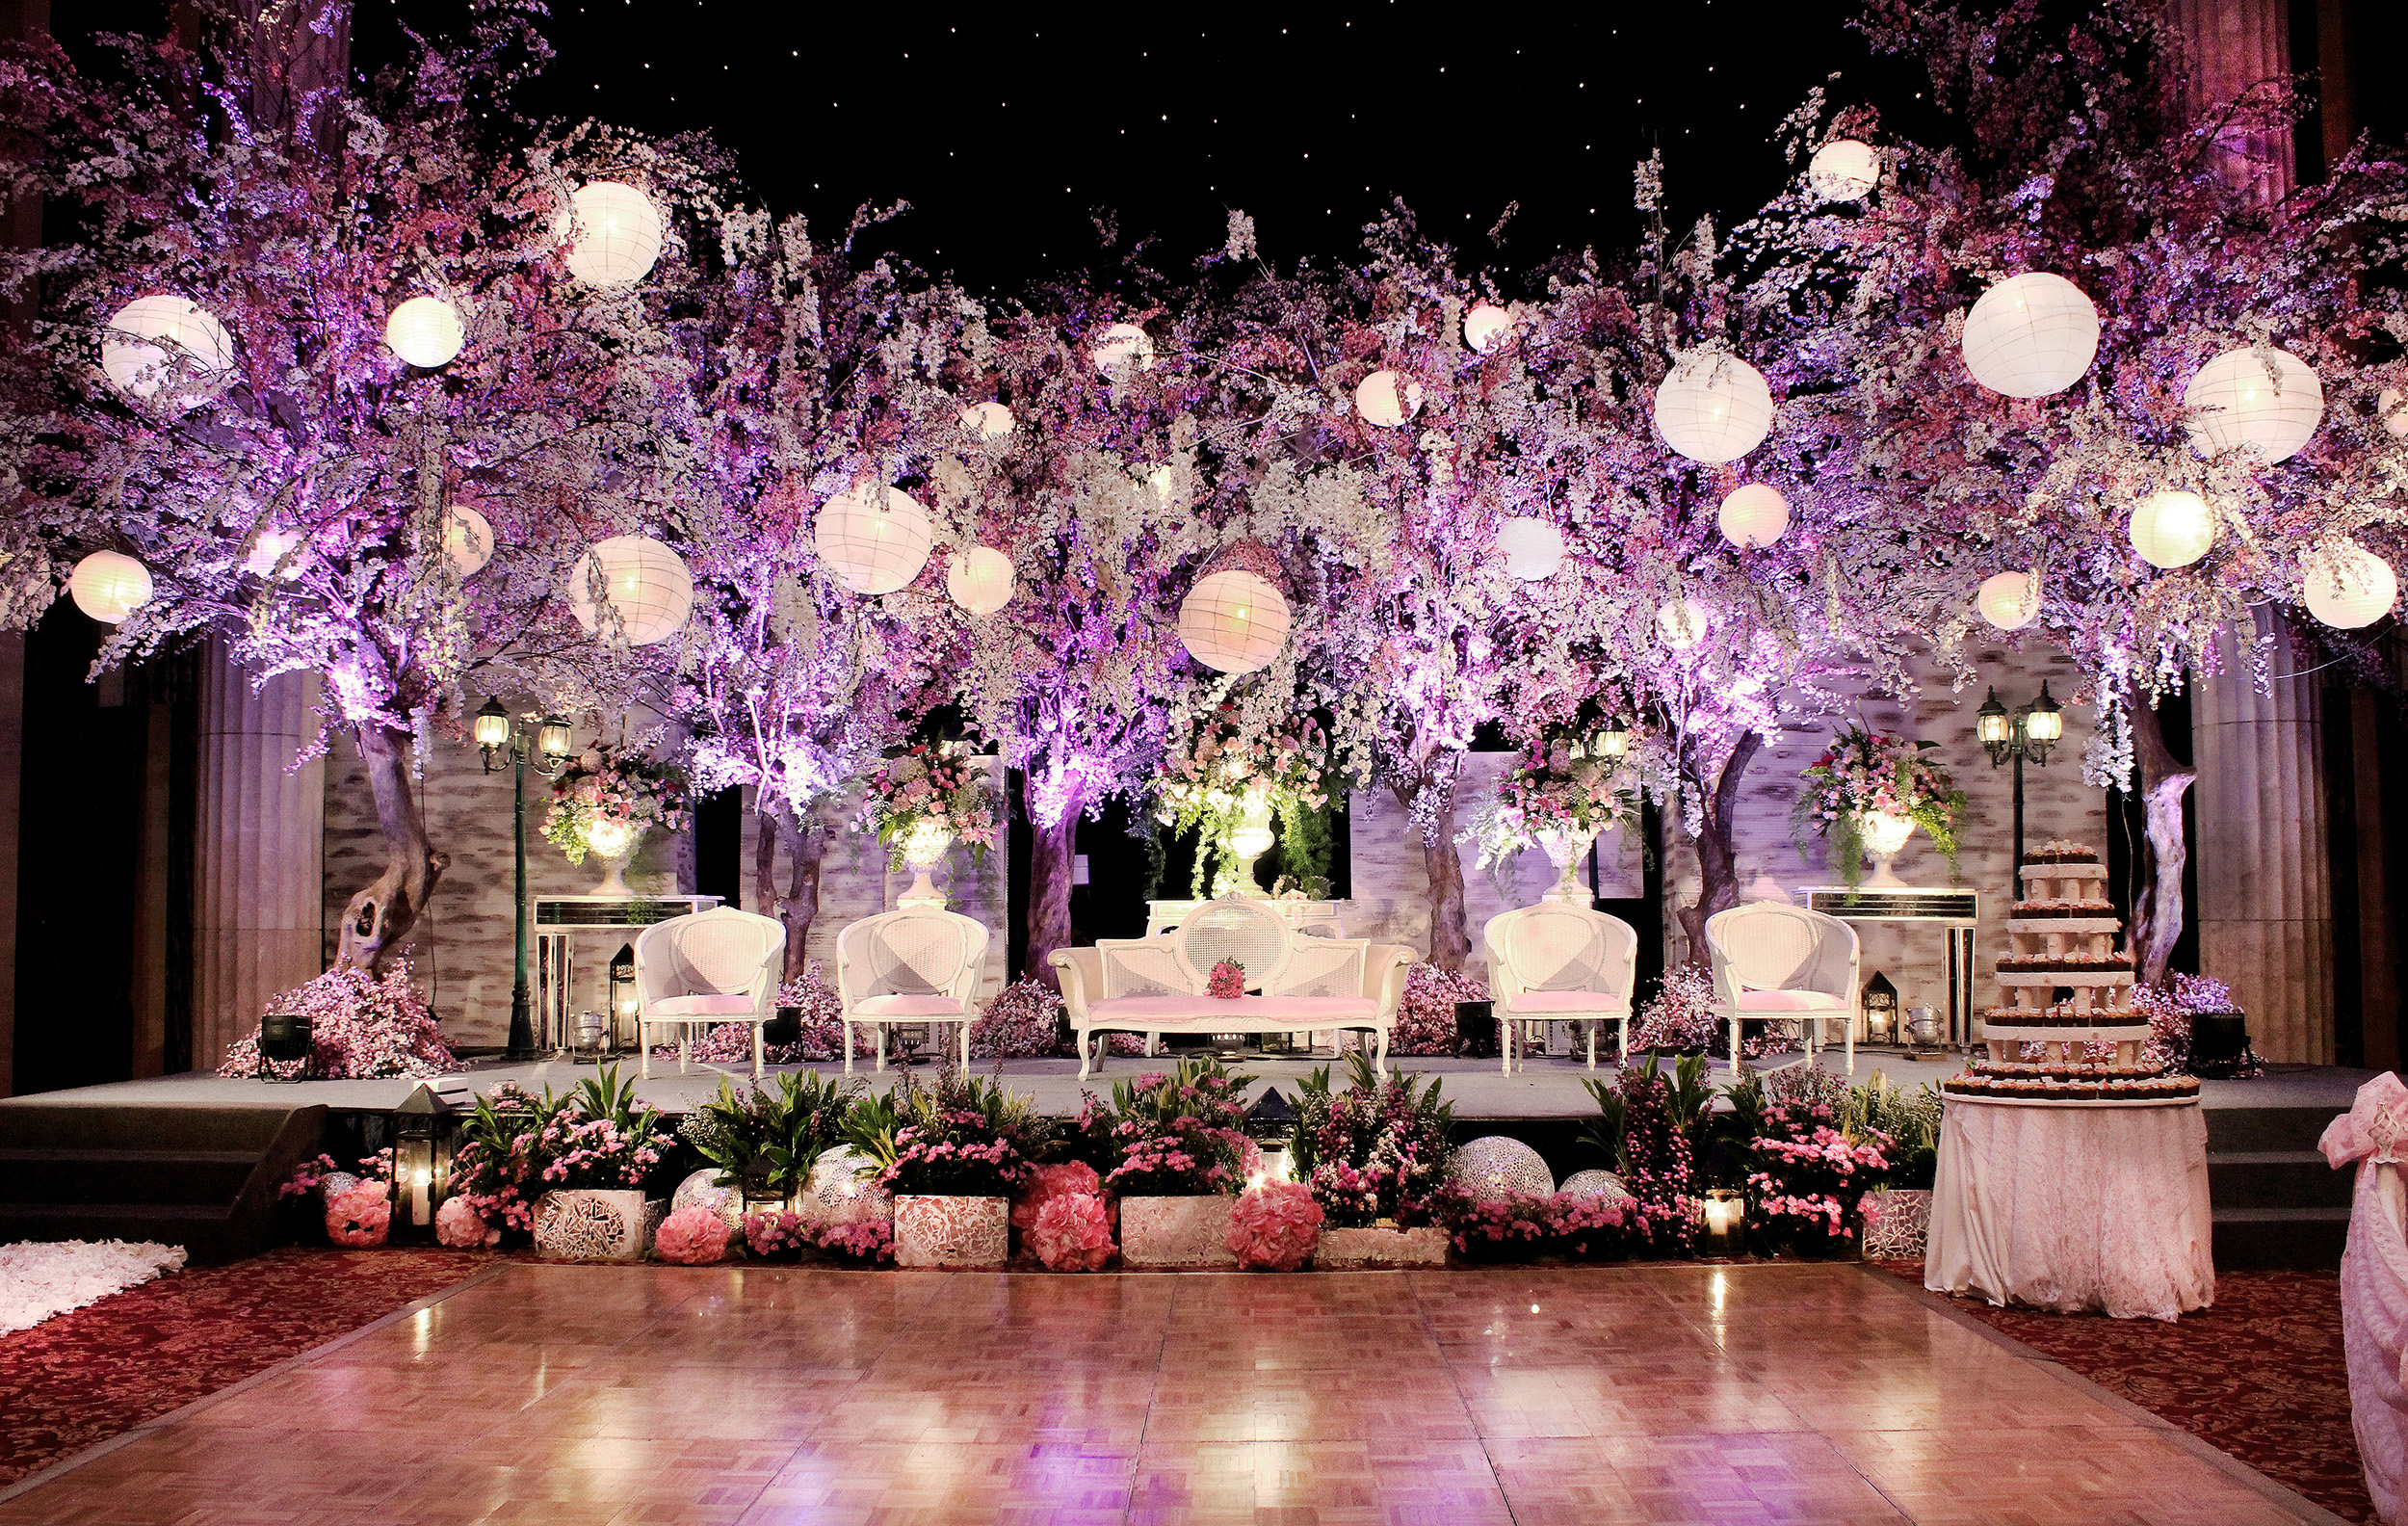 Azalia decorationwedding decoration azalia decoration sakura wedding decoration kempinski hotel jakarta by azalia decoration junglespirit Gallery